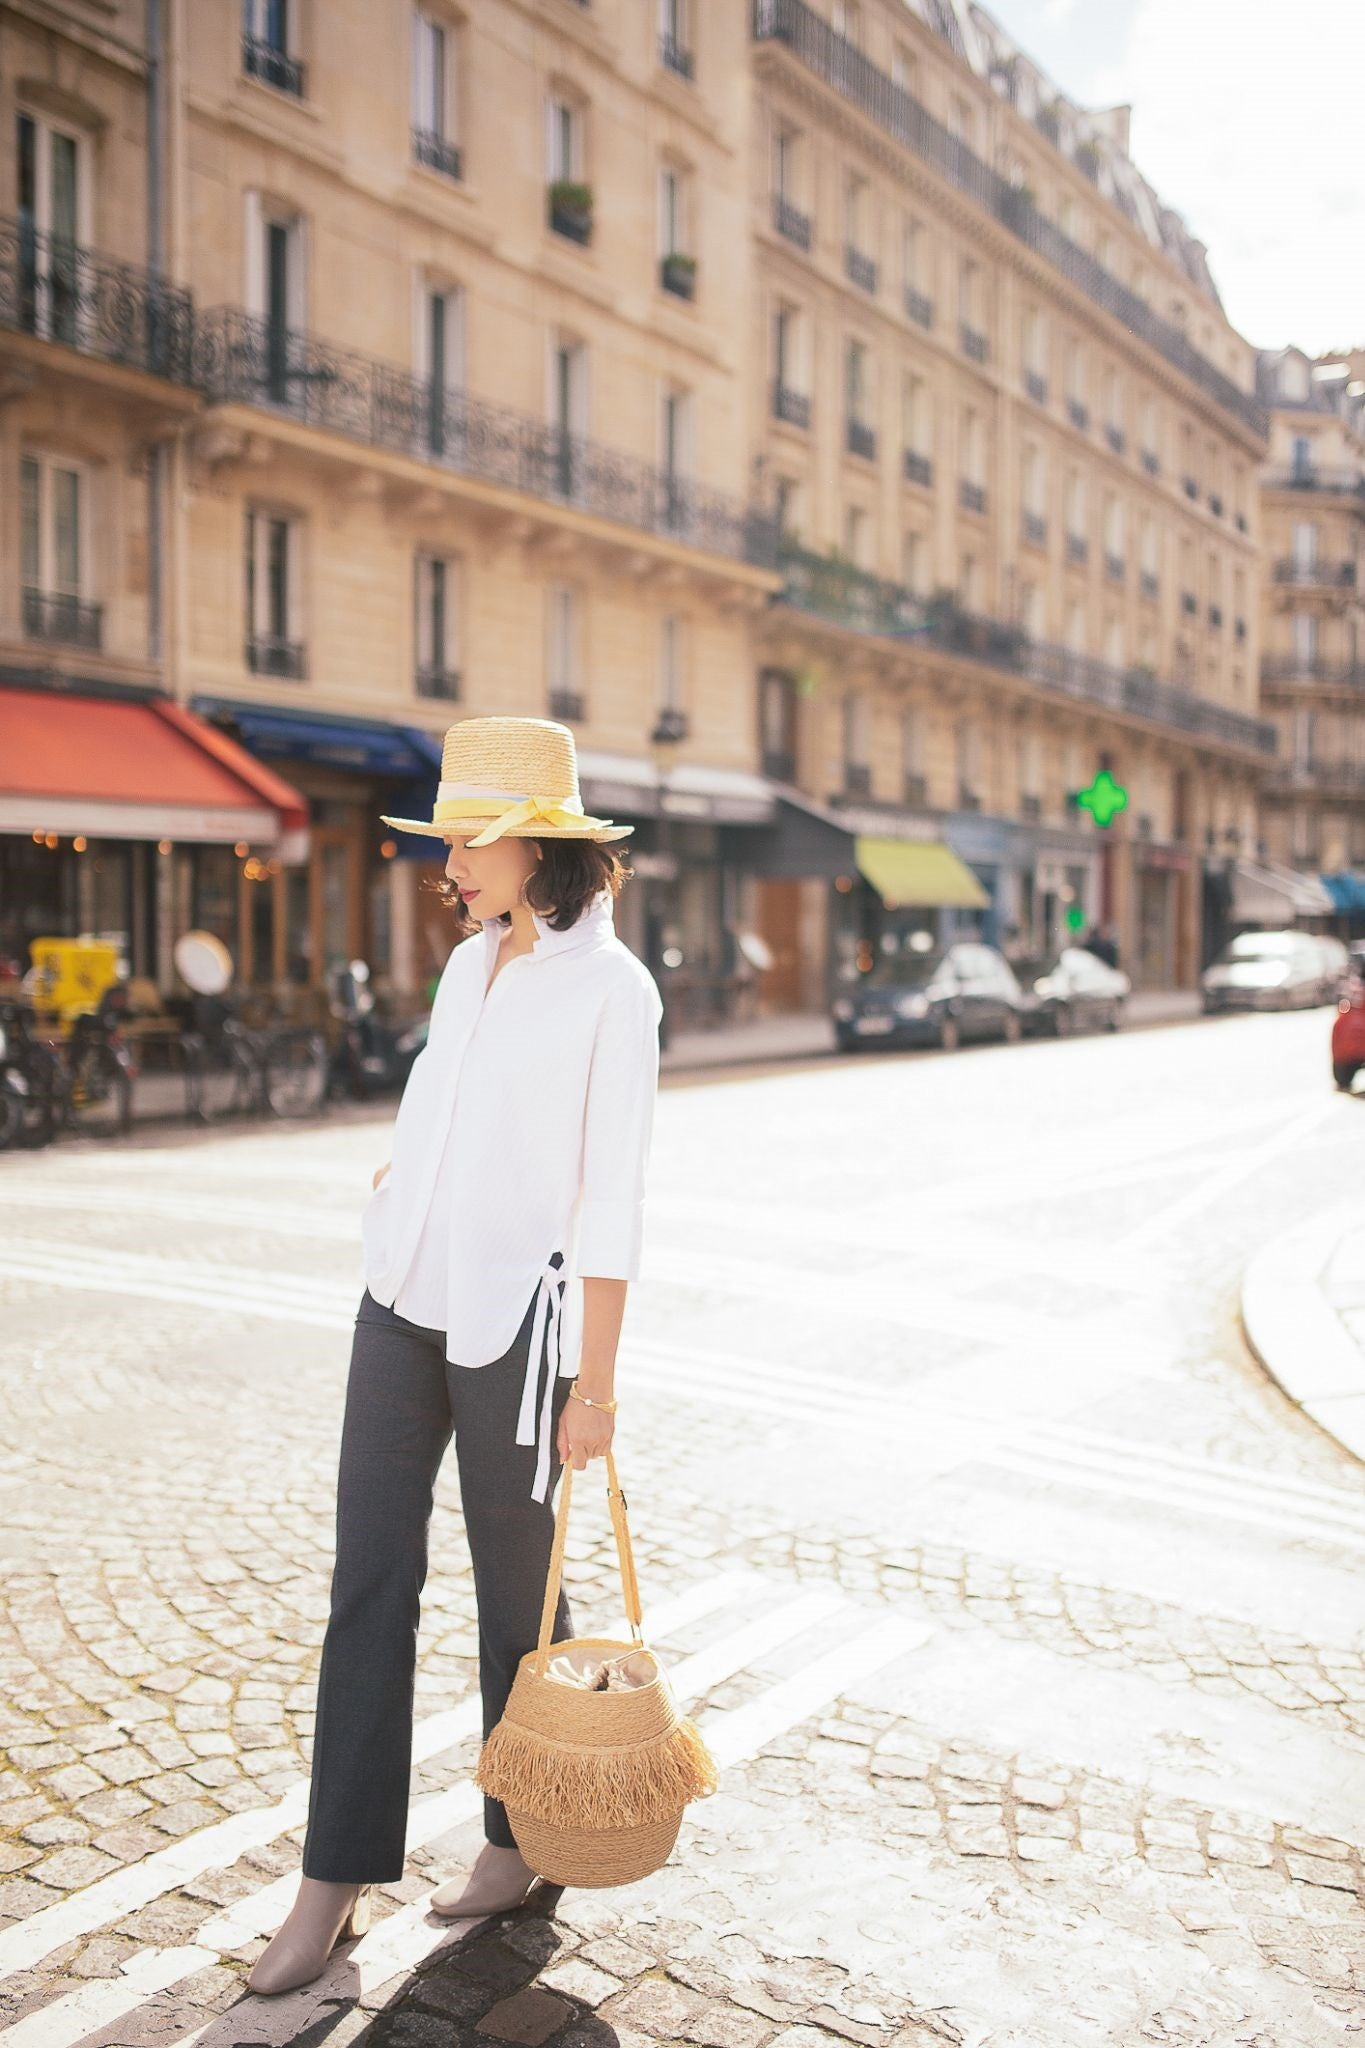 Mimi-Minh Nguyen in Paris with bucket Simon mini and Modernist hat, photo by Anh Huy Pham